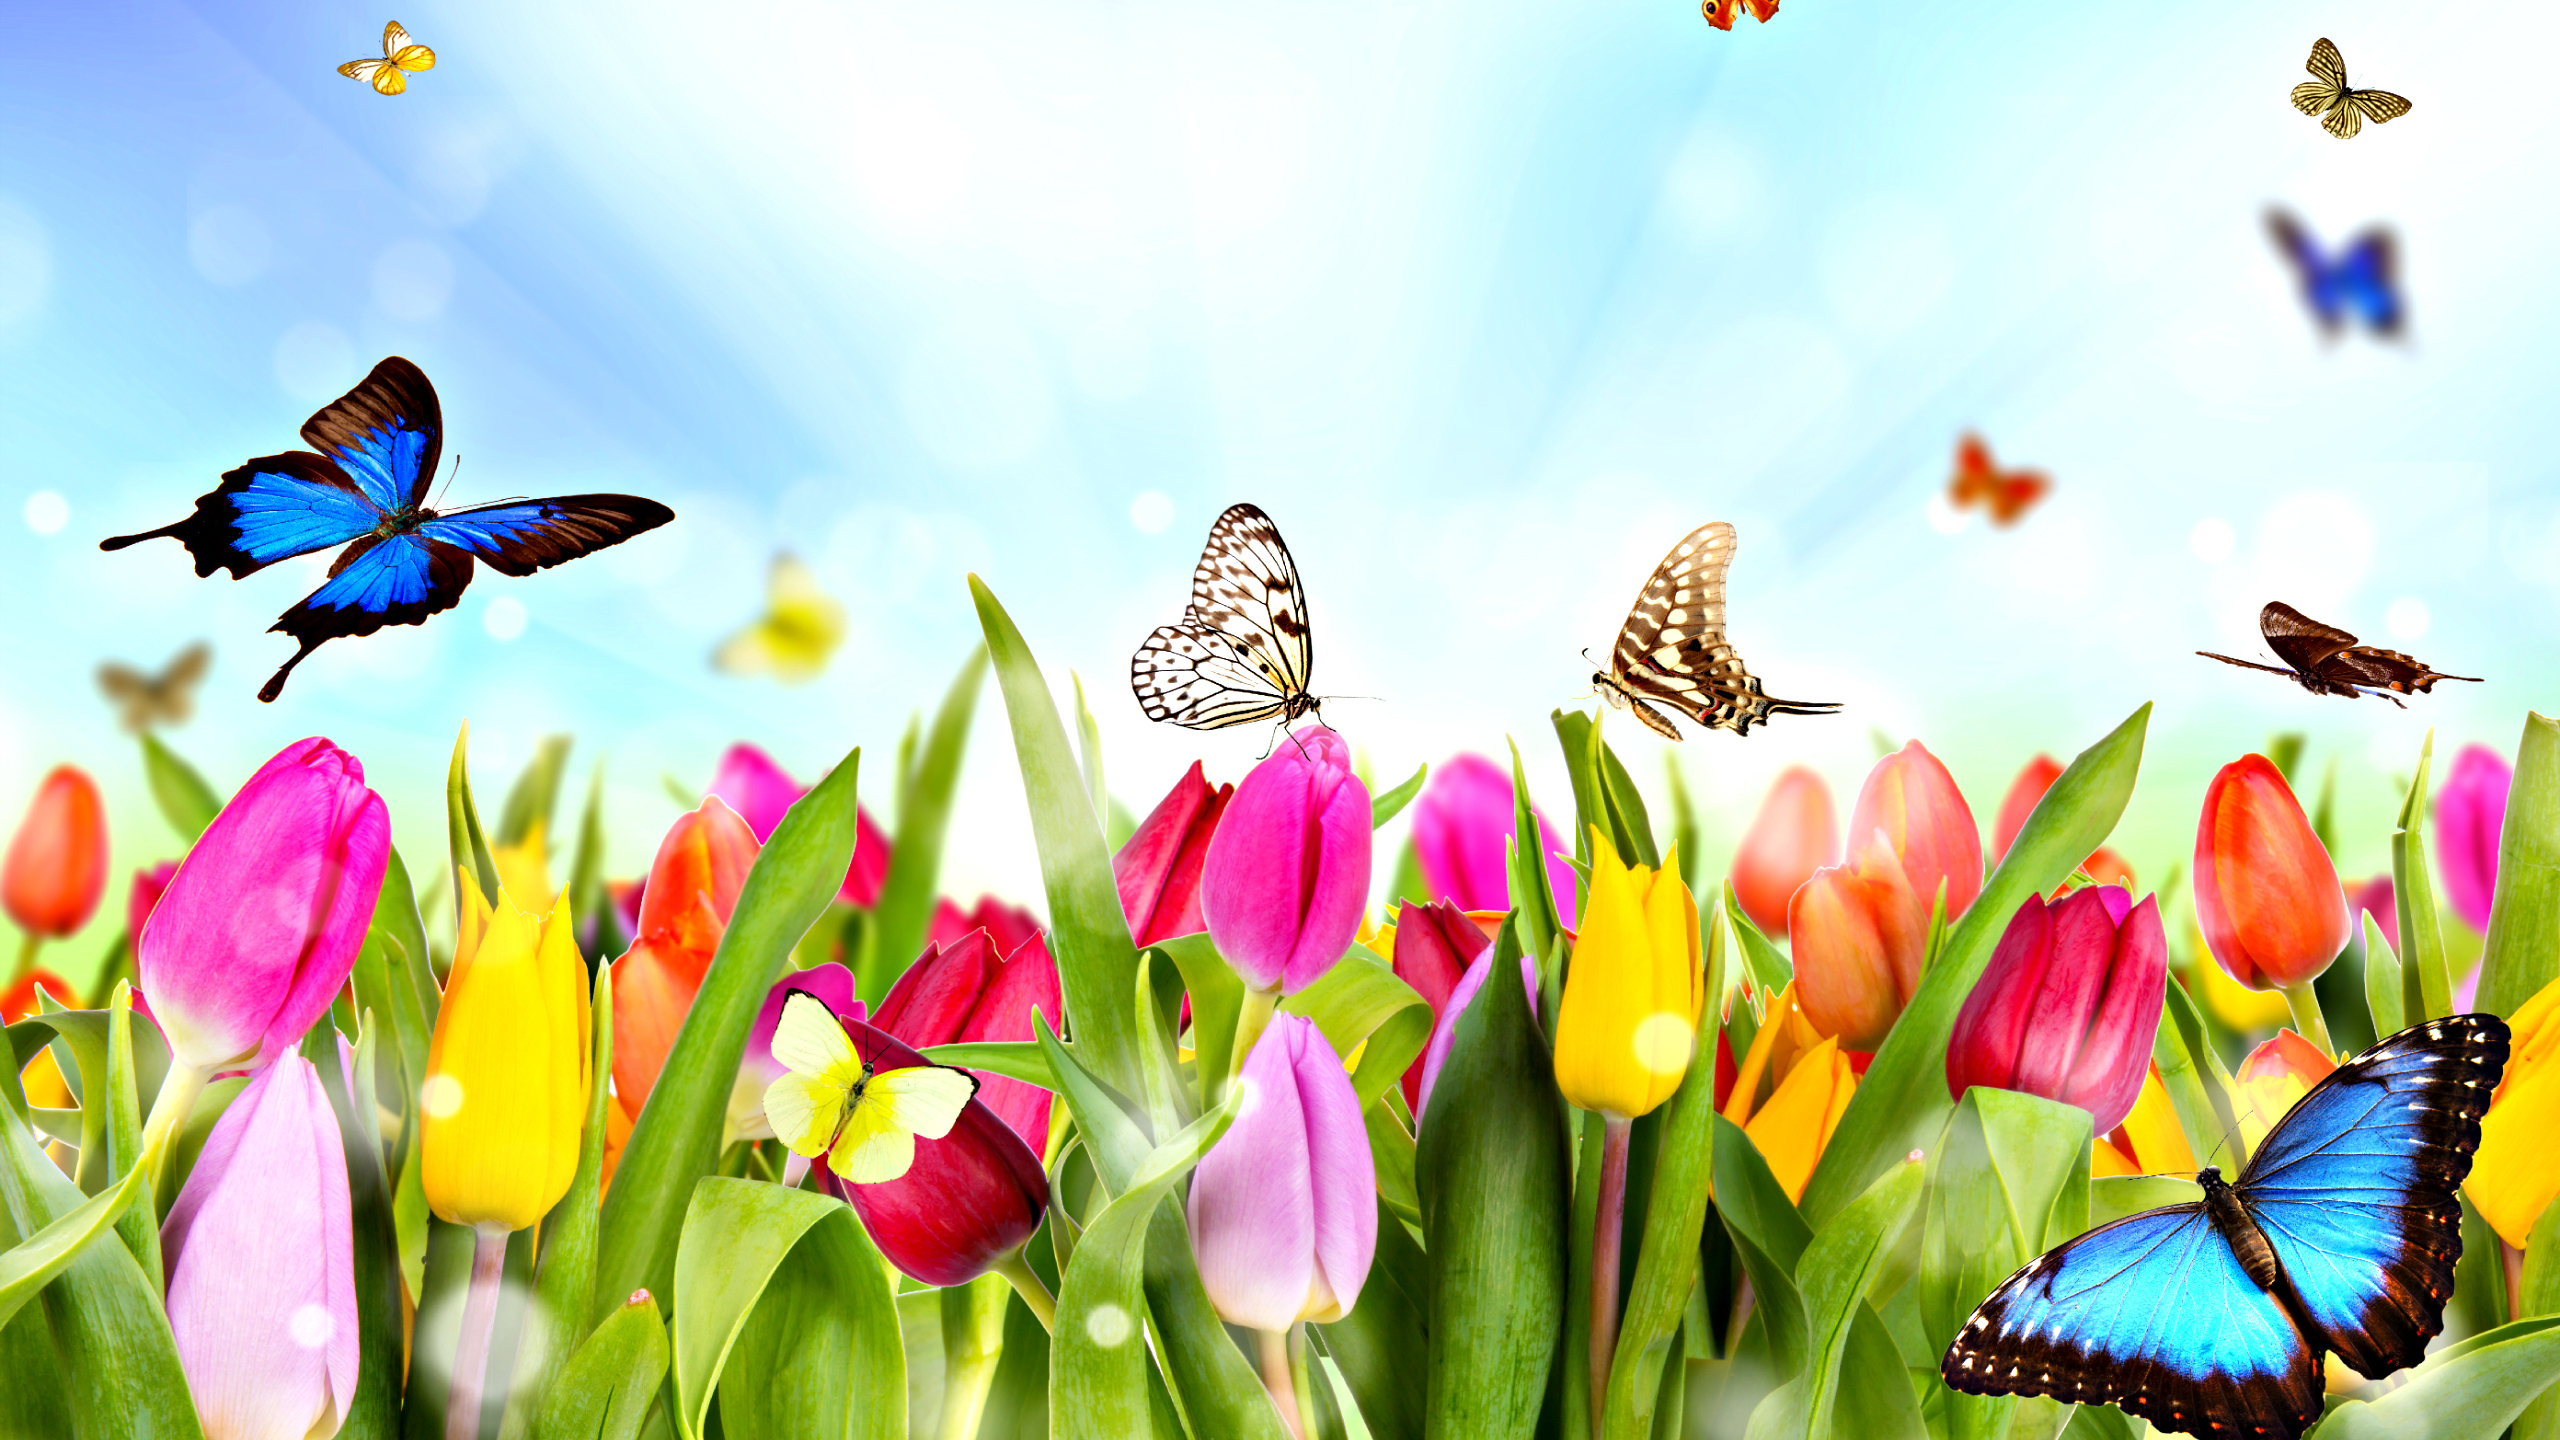 Nature Spring | Free Desktop Wallpapers for Widescreen, HD ...